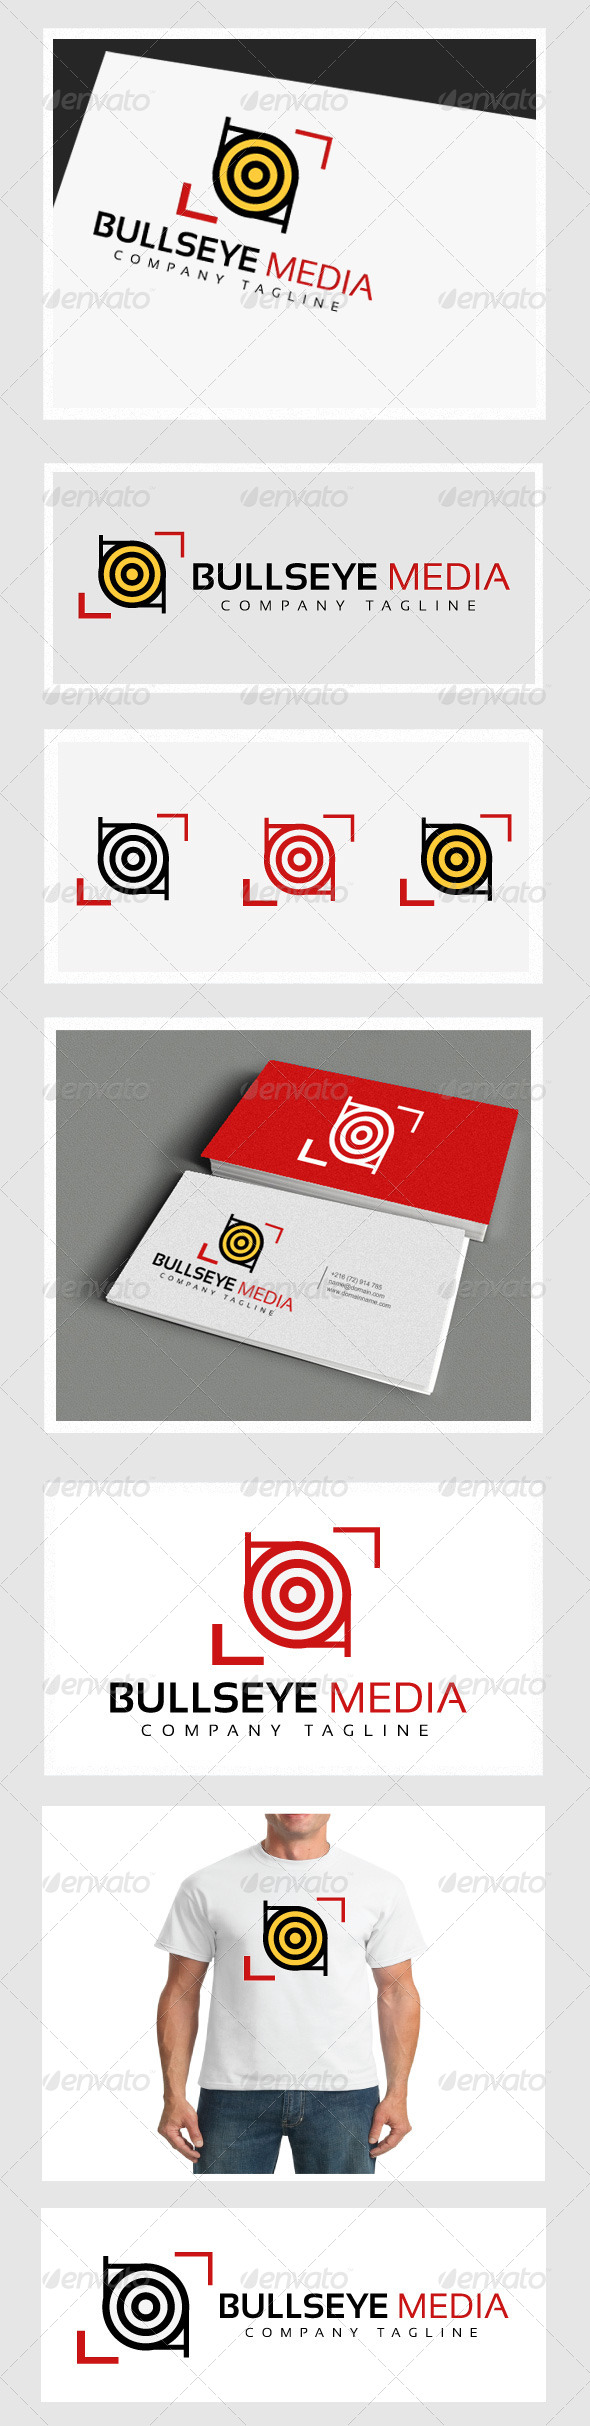 GraphicRiver Bullseye Media 4337988